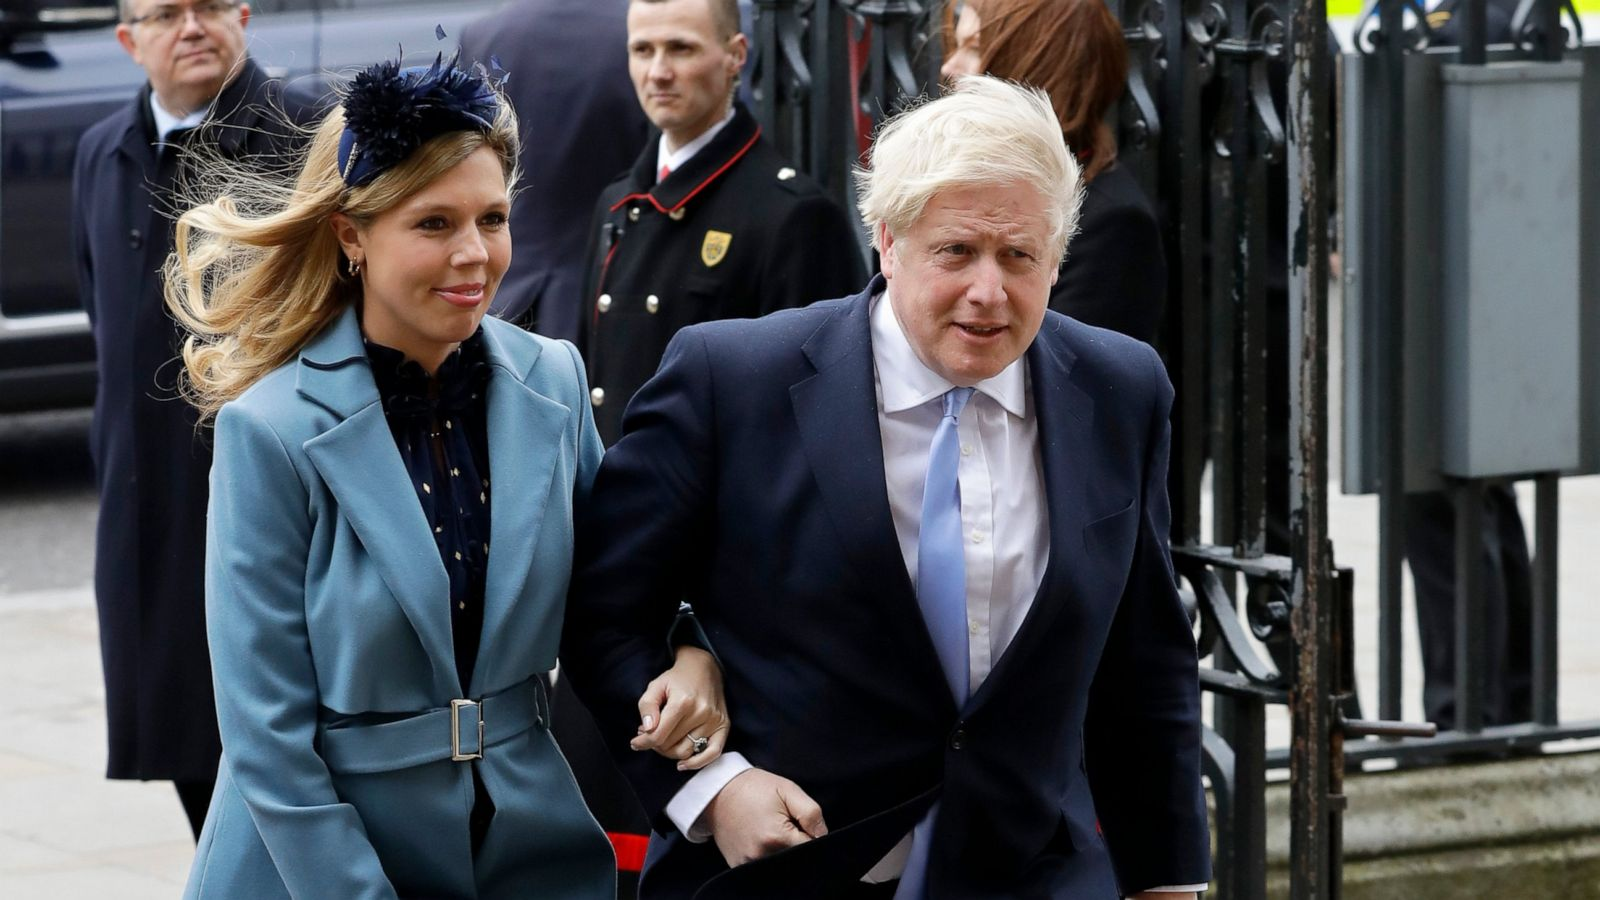 Boris Johnson's Wife Expects a Baby in December after Suffering Miscarriage